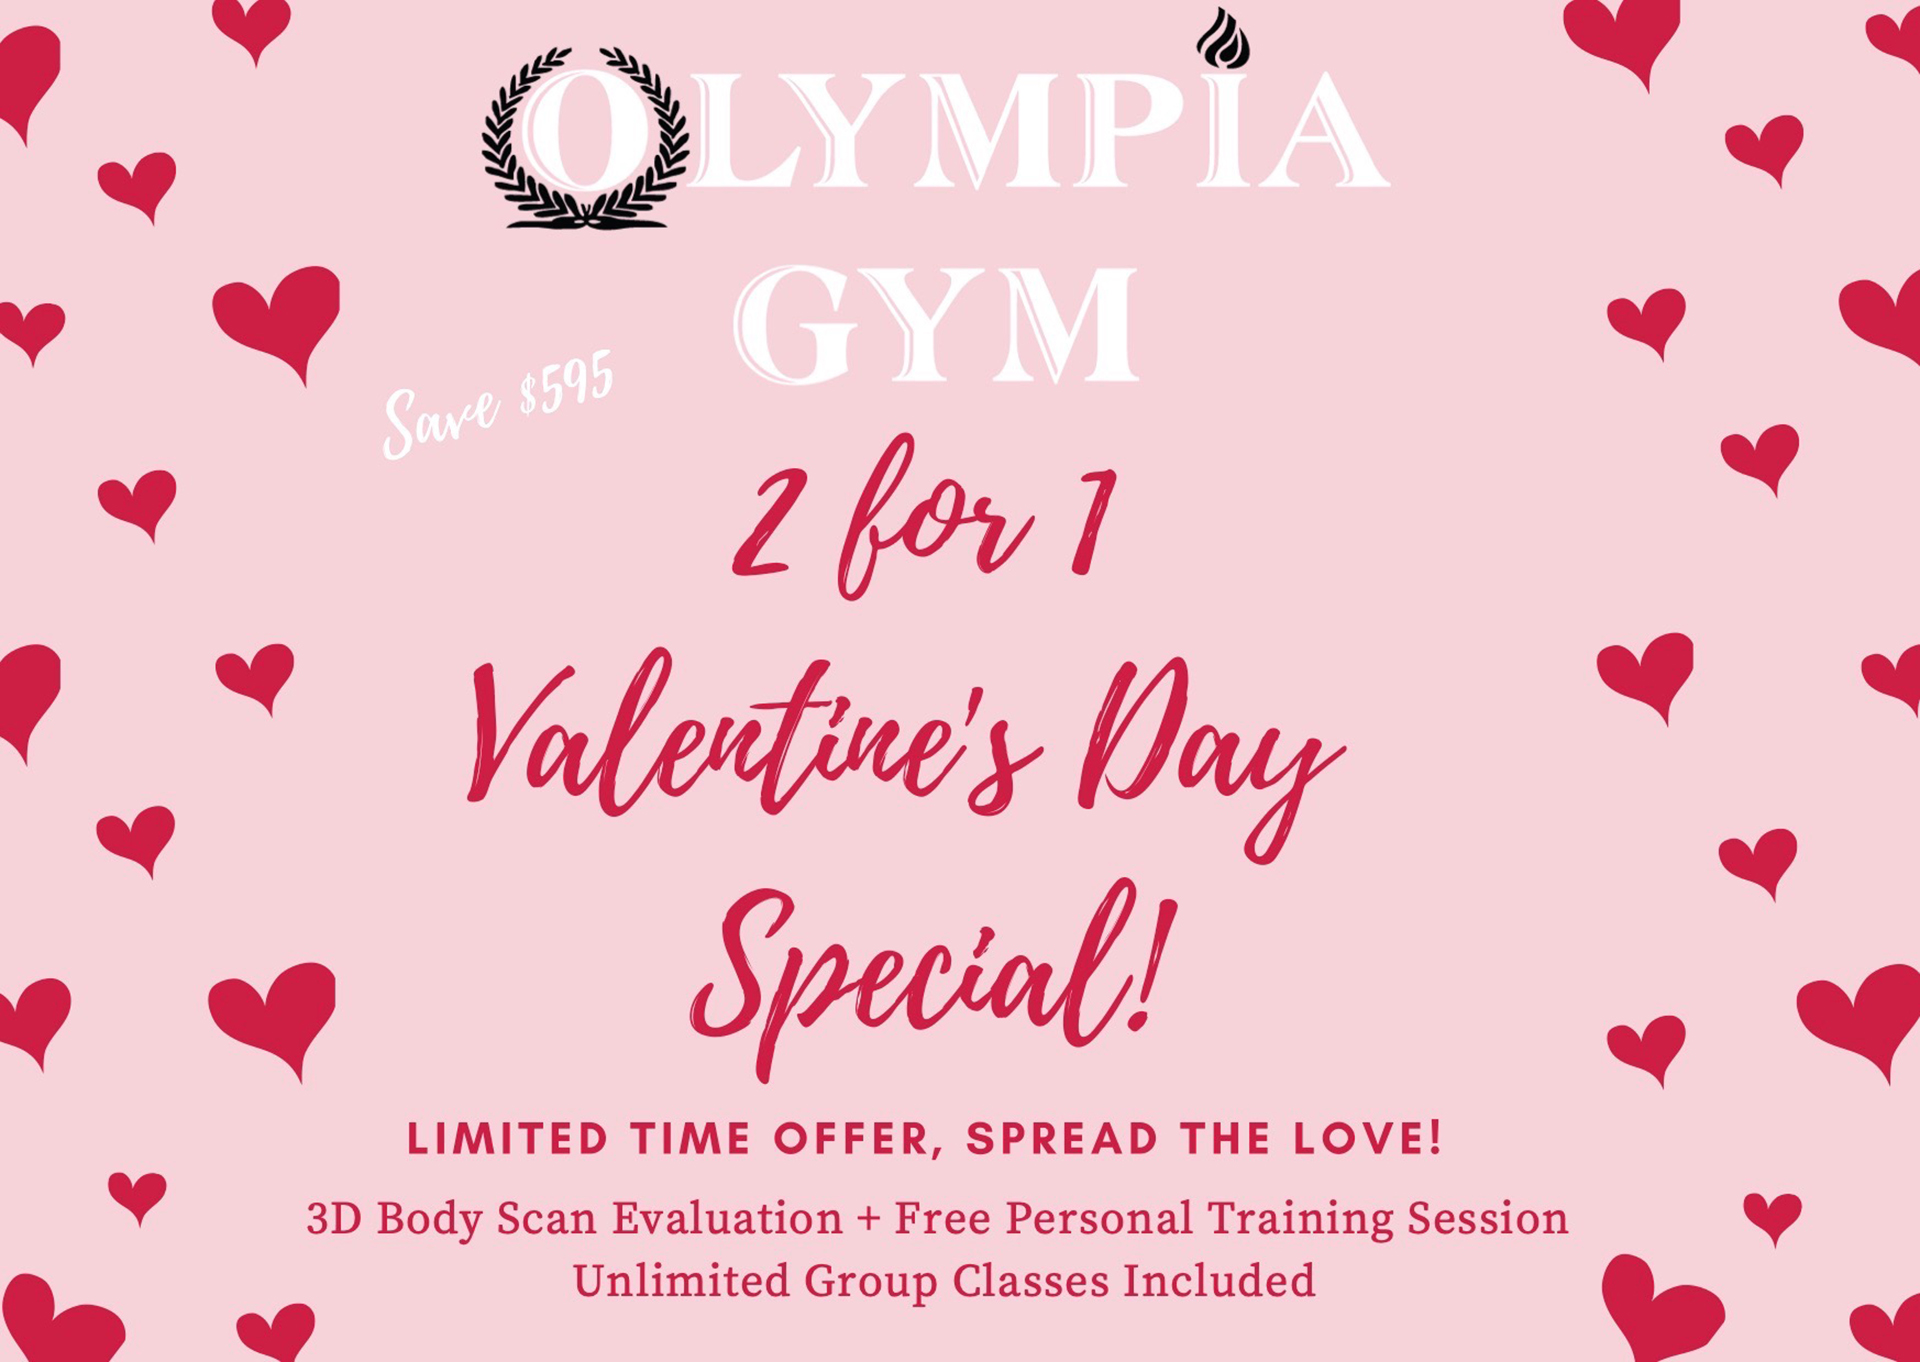 2 for 1 Valentine's Special